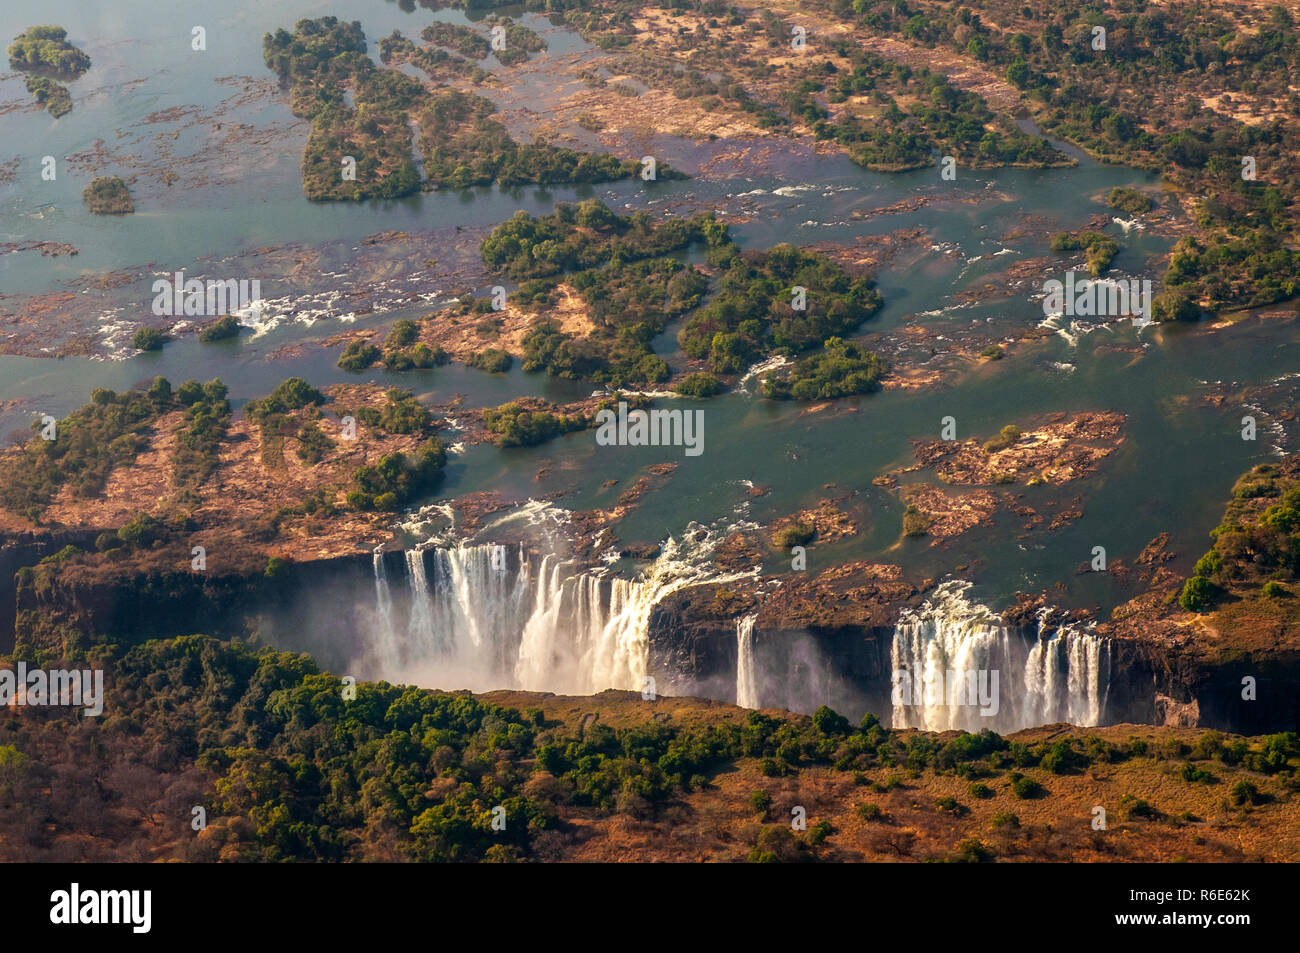 Victoria Falls, The Largest Curtain Of Water In The World The Falls And The Surrounding Area Is The National Parks And World Heritage Site, Zambia And - Stock Image